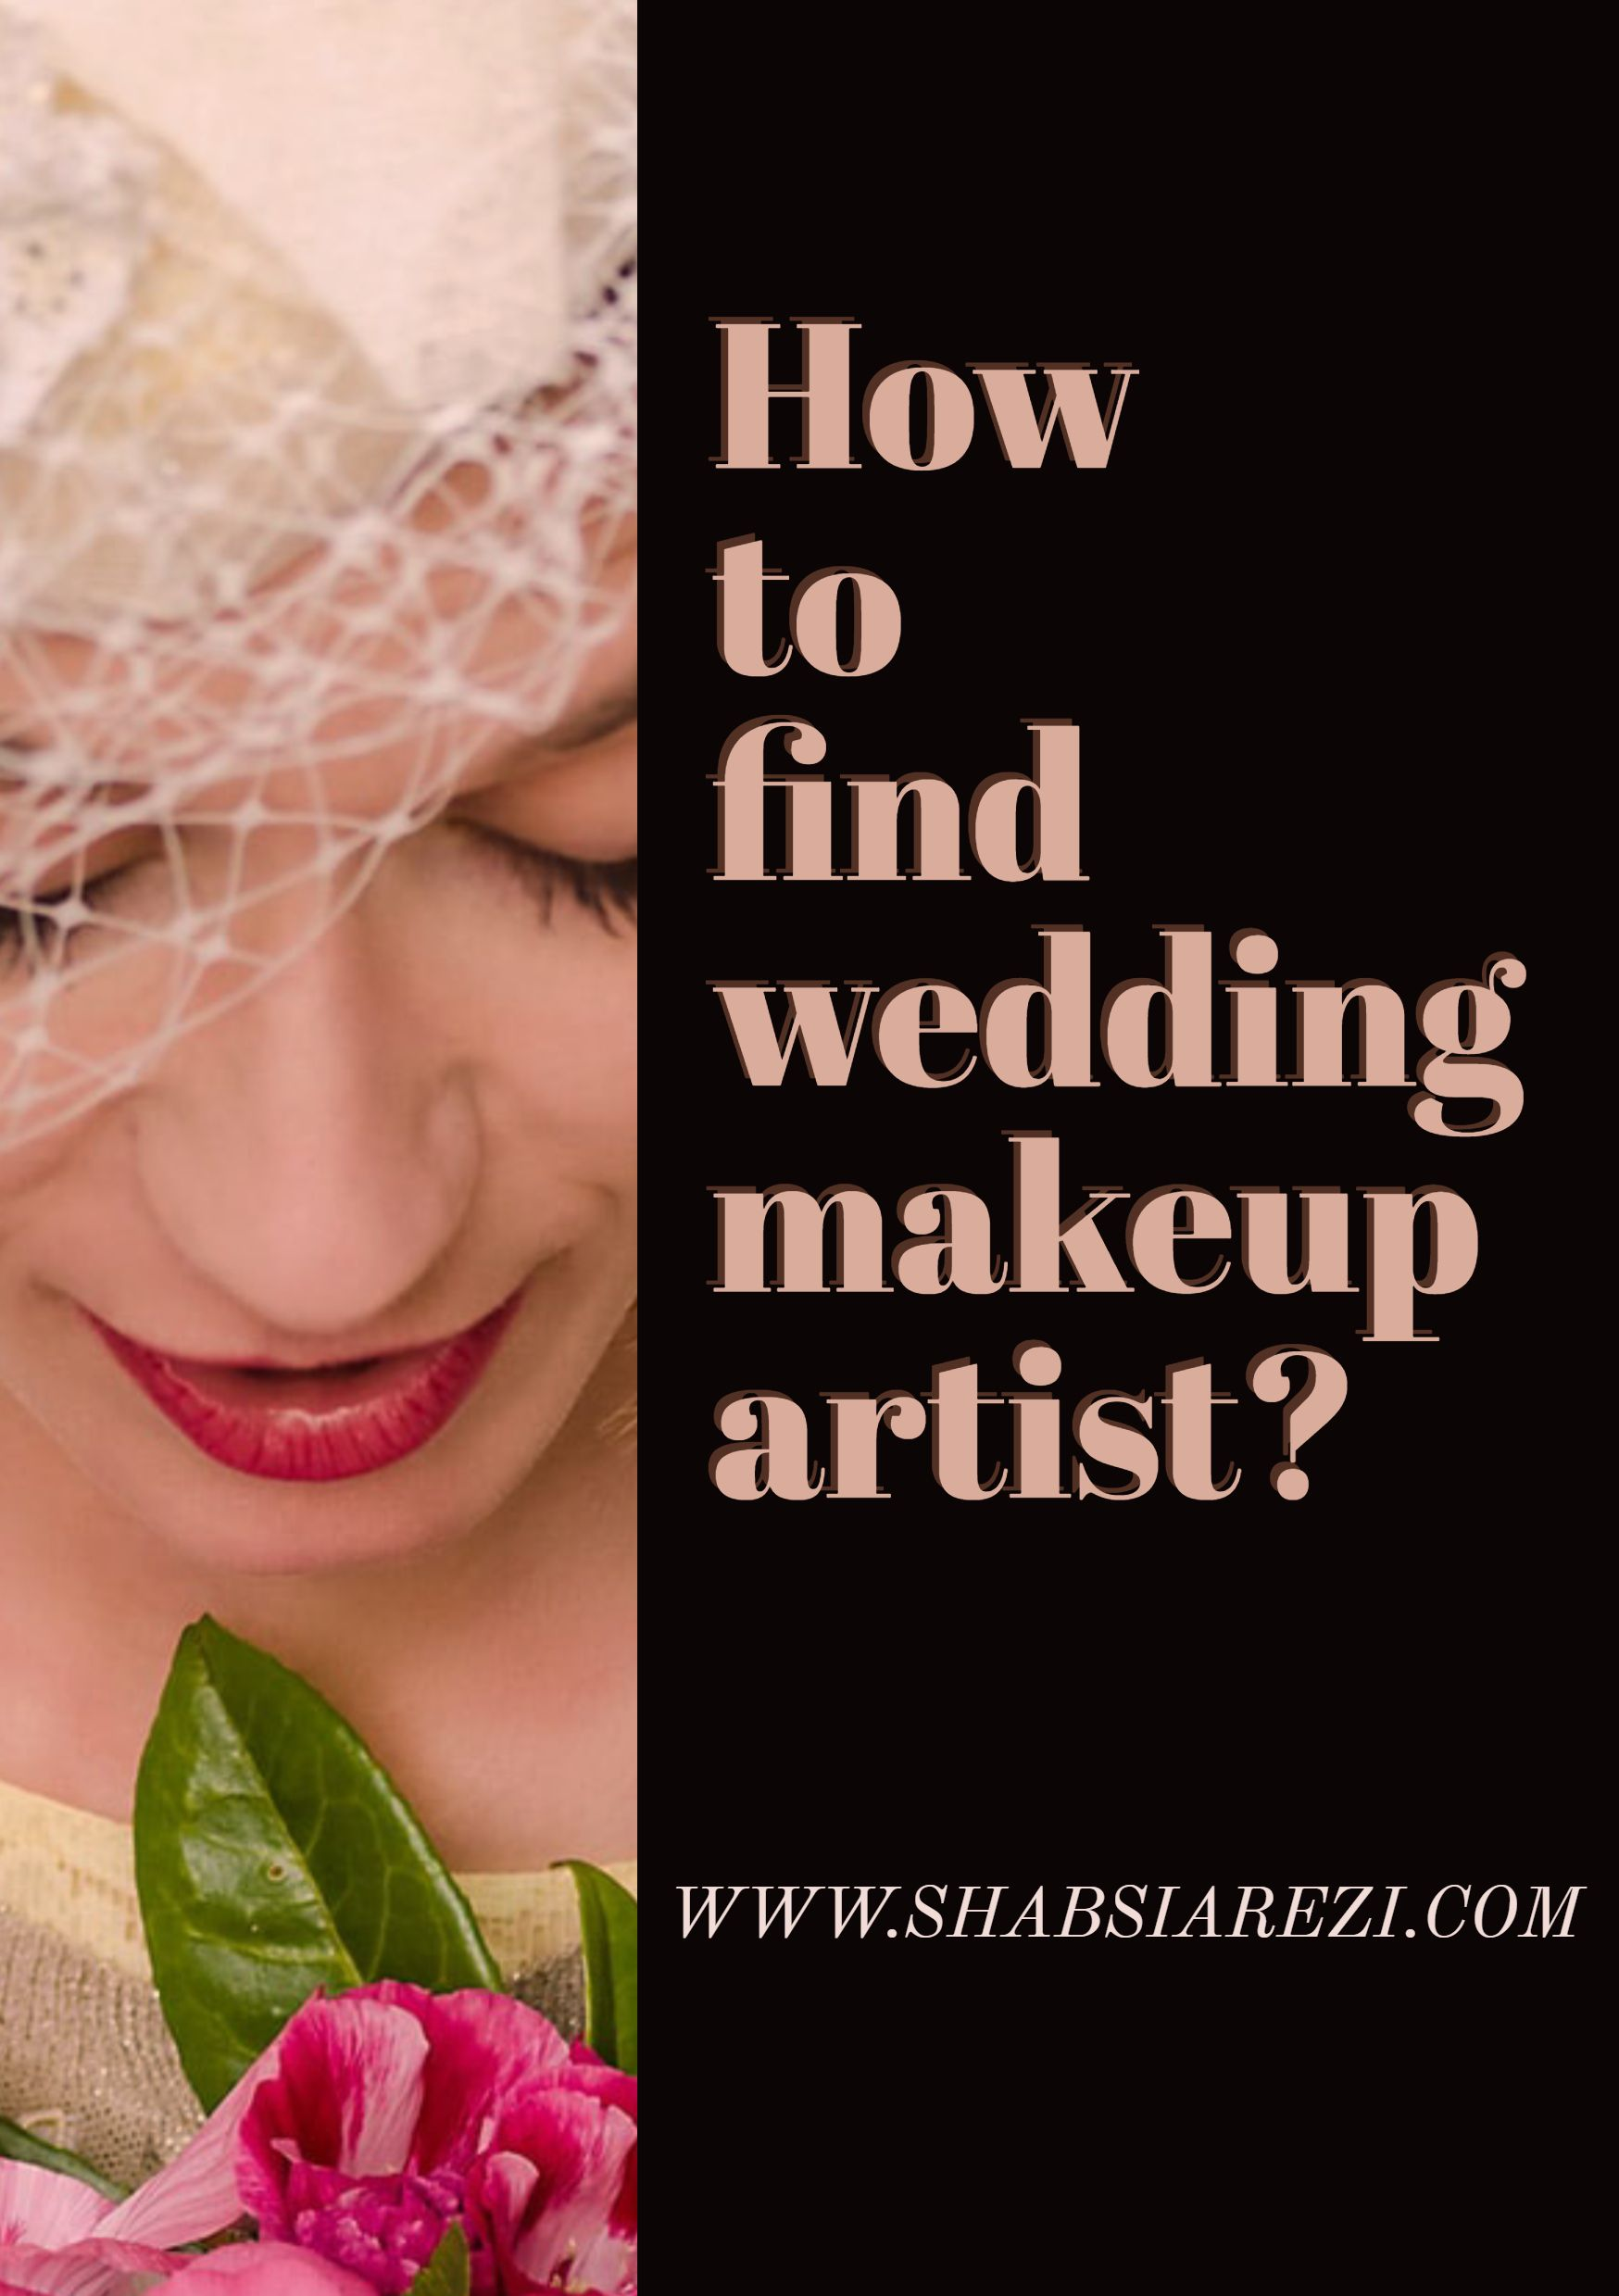 How to find wedding makeup artist Wedding makeup artist